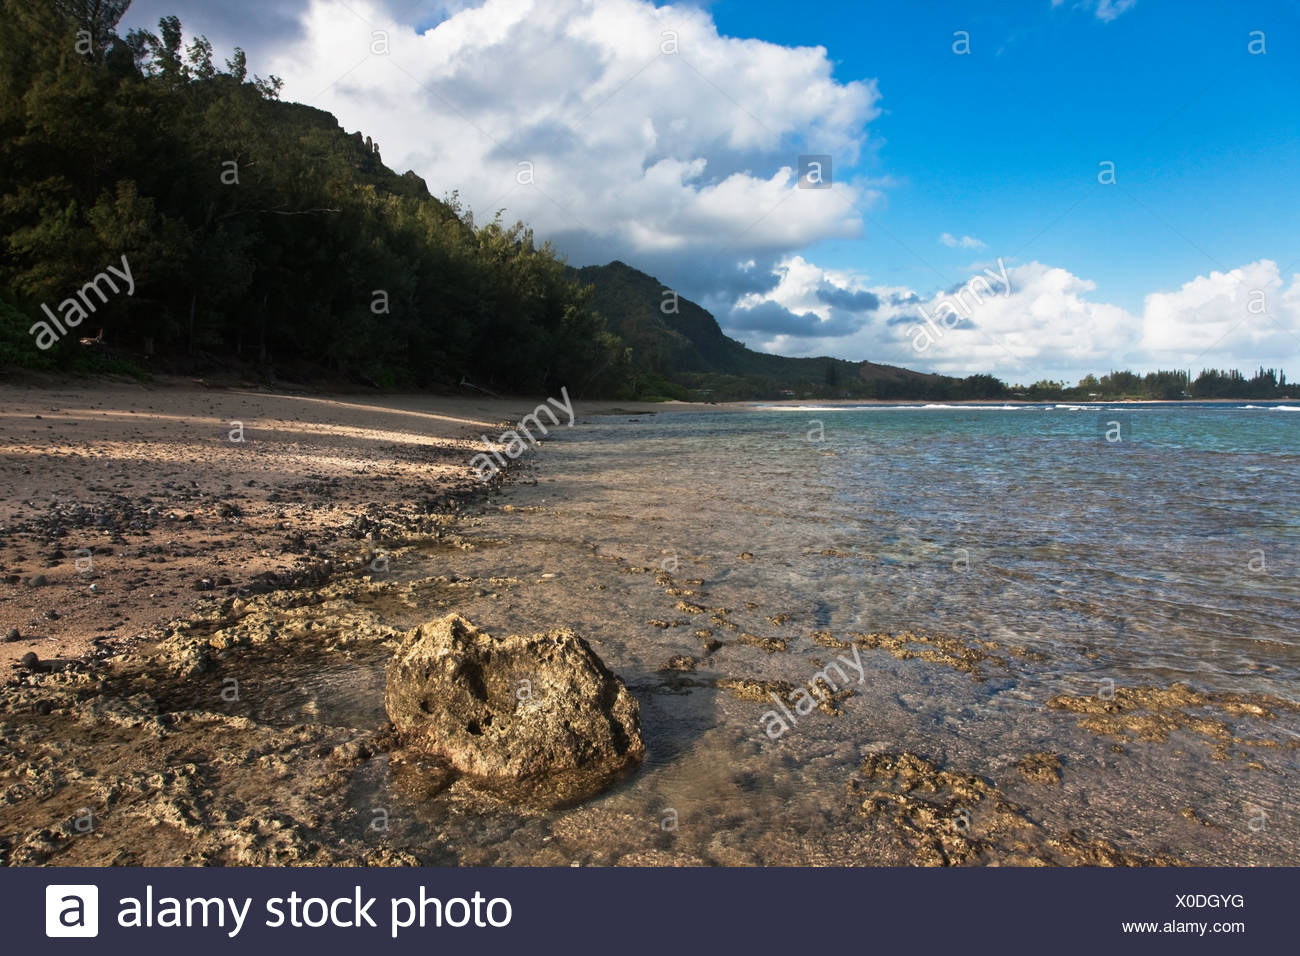 Kauai, Hawaii, United States Of America; Shallow Water Covers A Flat-Topped Coral Reef Along The North Shore Of Kauai - Stock Image